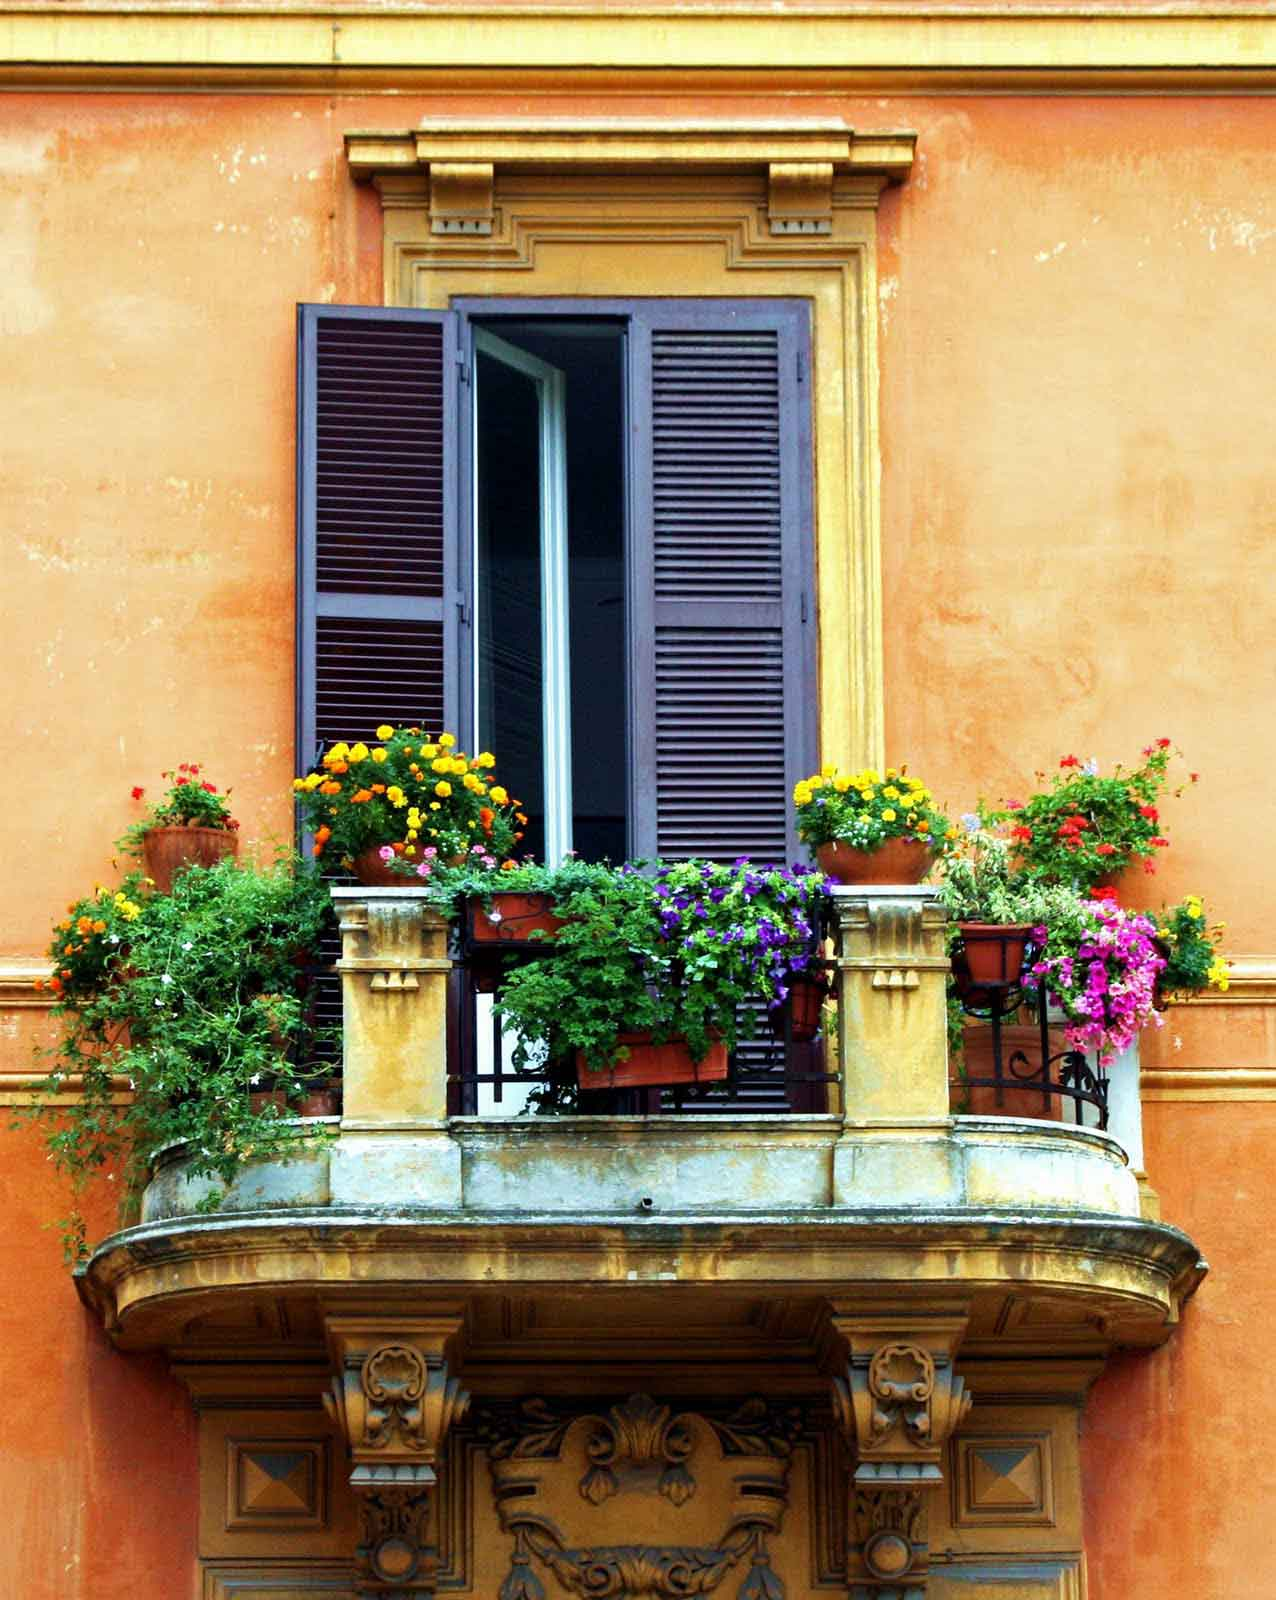 35 world 39 s most beautiful balconies your no 1 source of for Pic of balcony